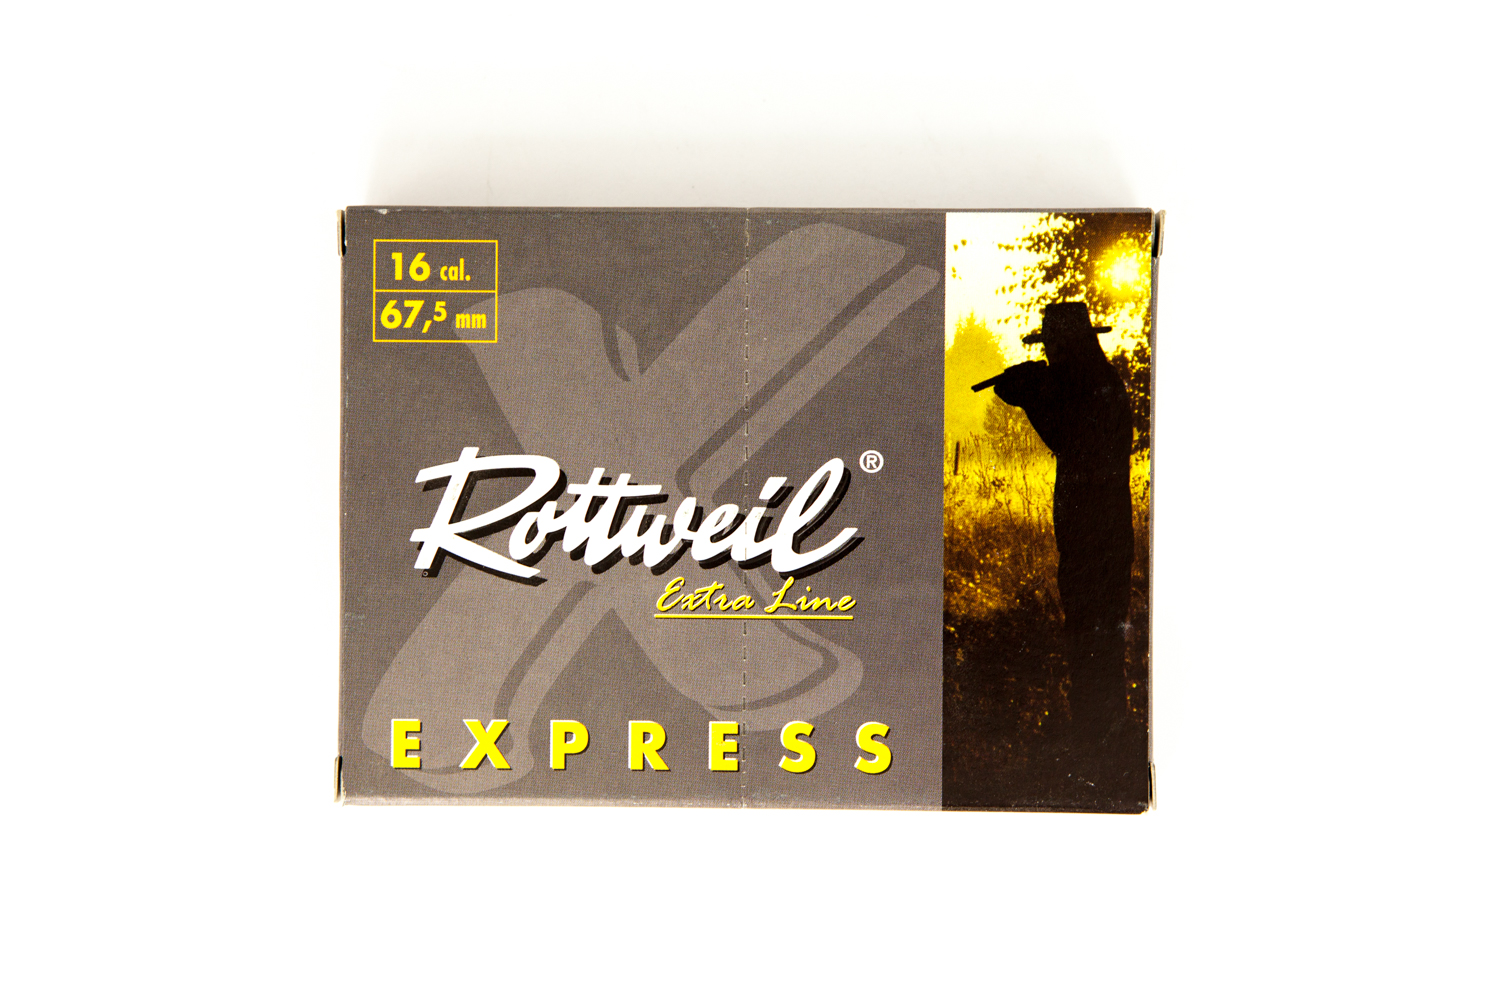 Rottweil 16/67,5 Express 7,4mm